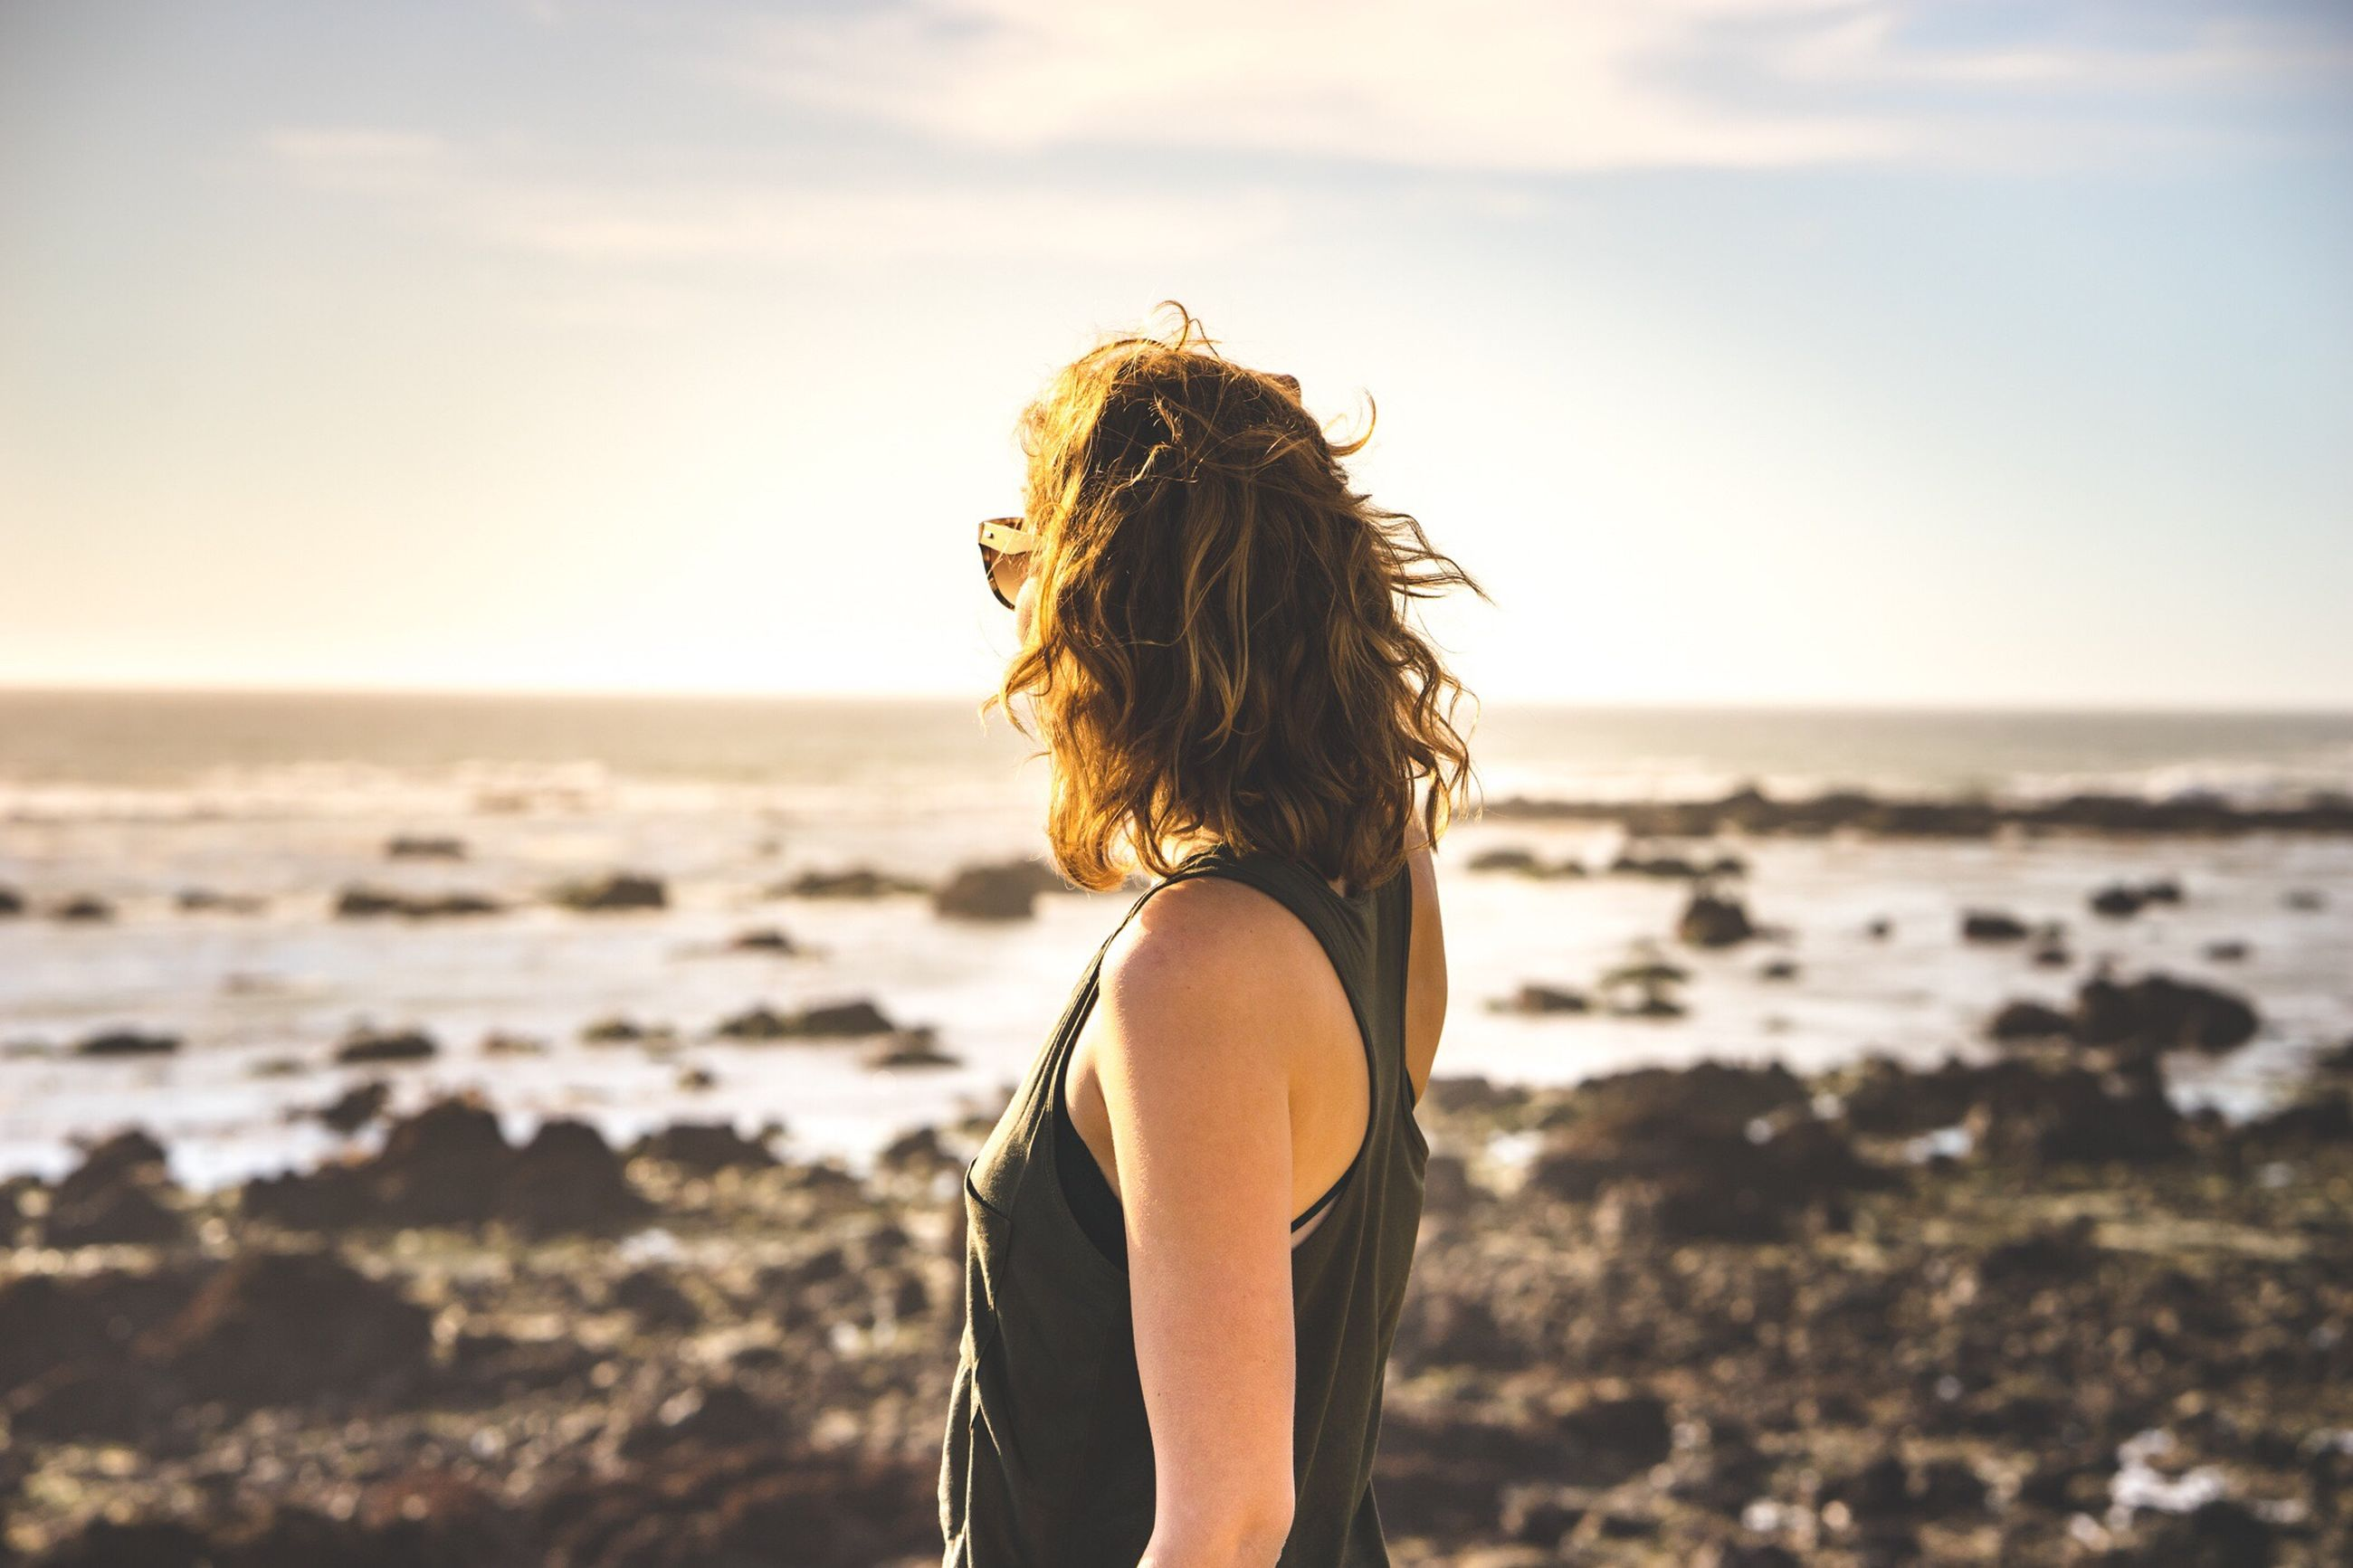 View of woman standing on beach